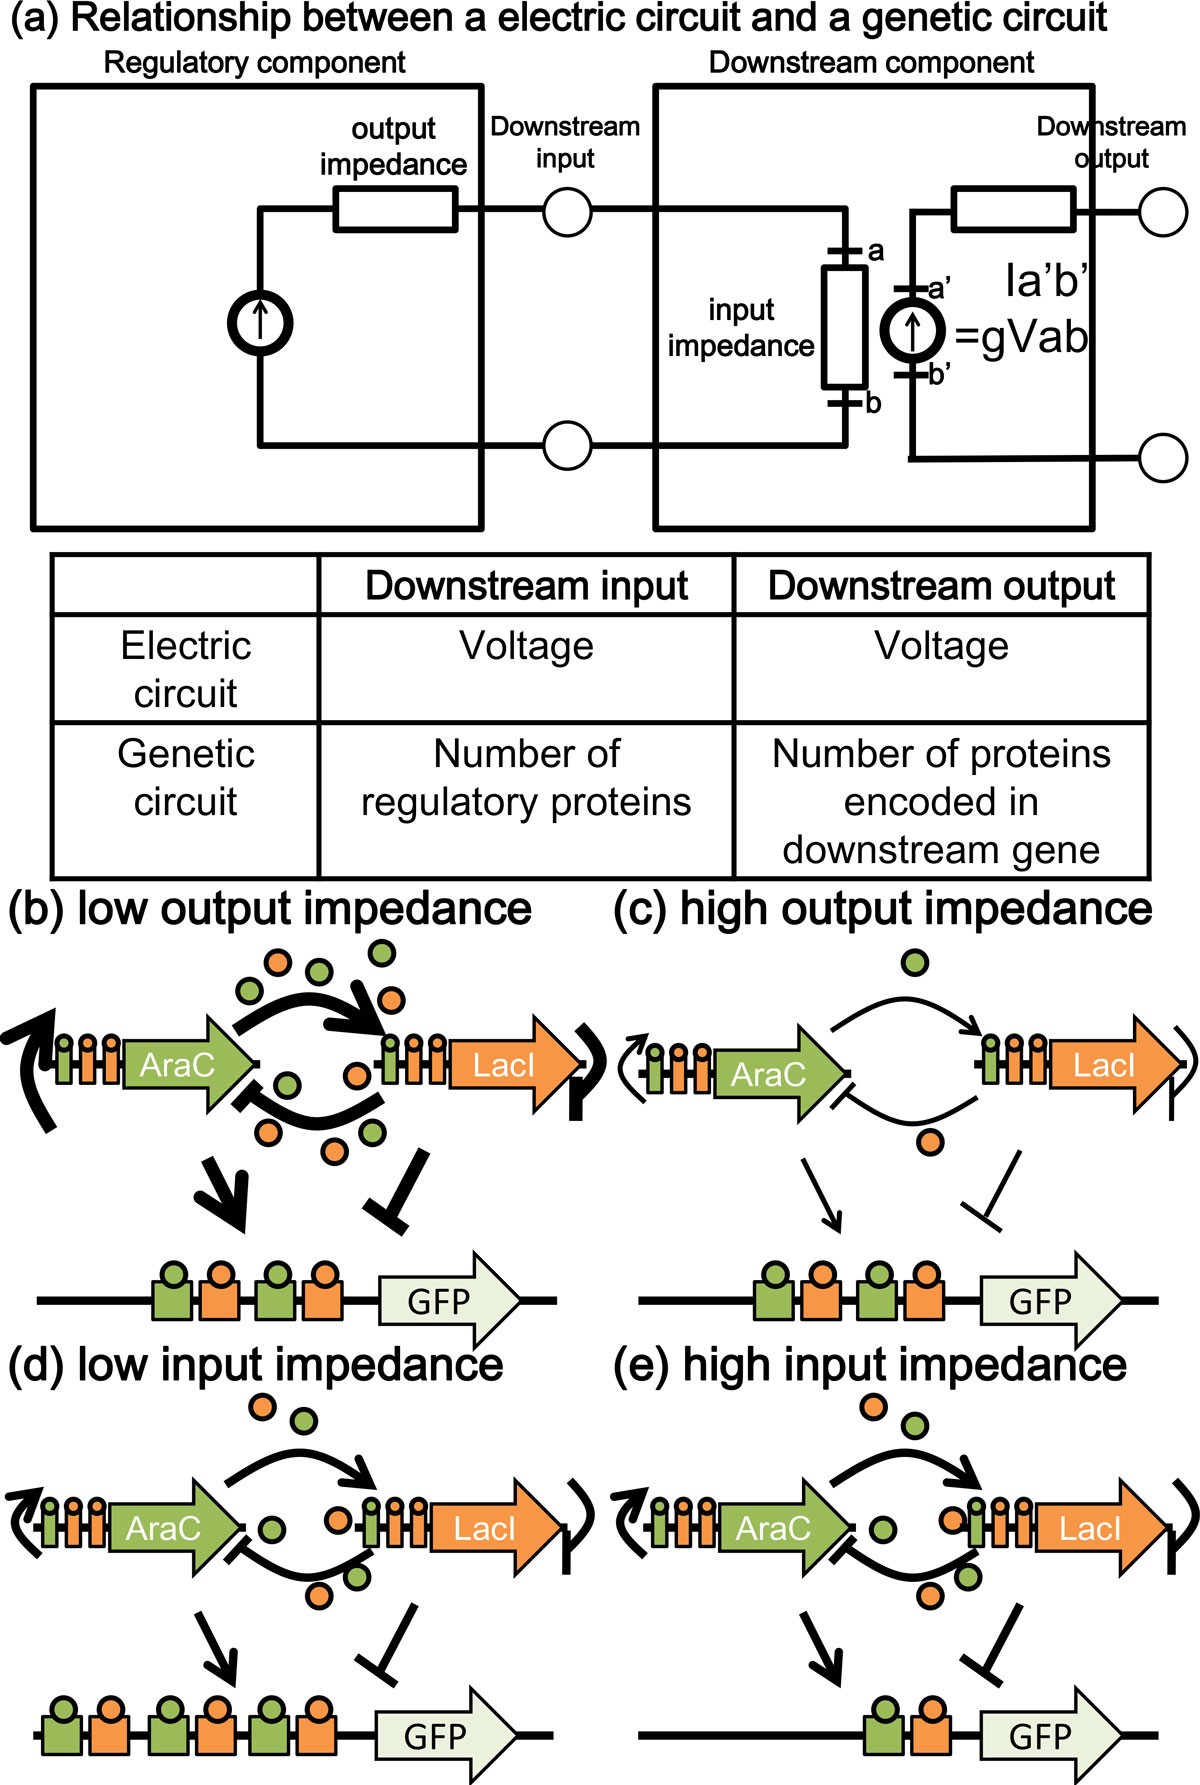 Effects of downstream genes on synthetic genetic circuits | BMC ...